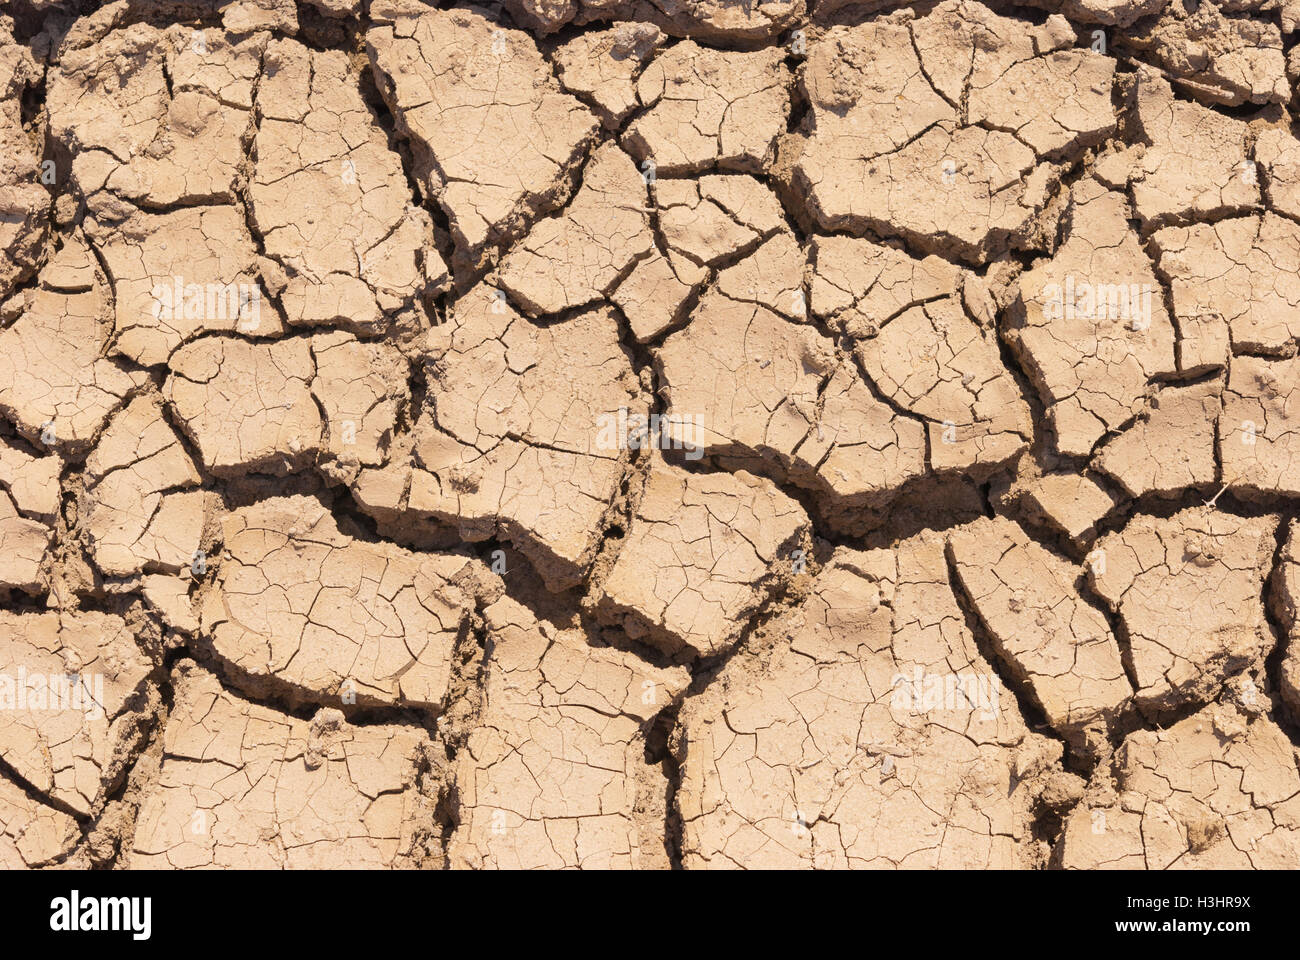 Dry cracking clay soil pattern stock photo royalty free image dry cracking clay soil pattern surface of dry cracking earth for textural background stock photo sciox Images